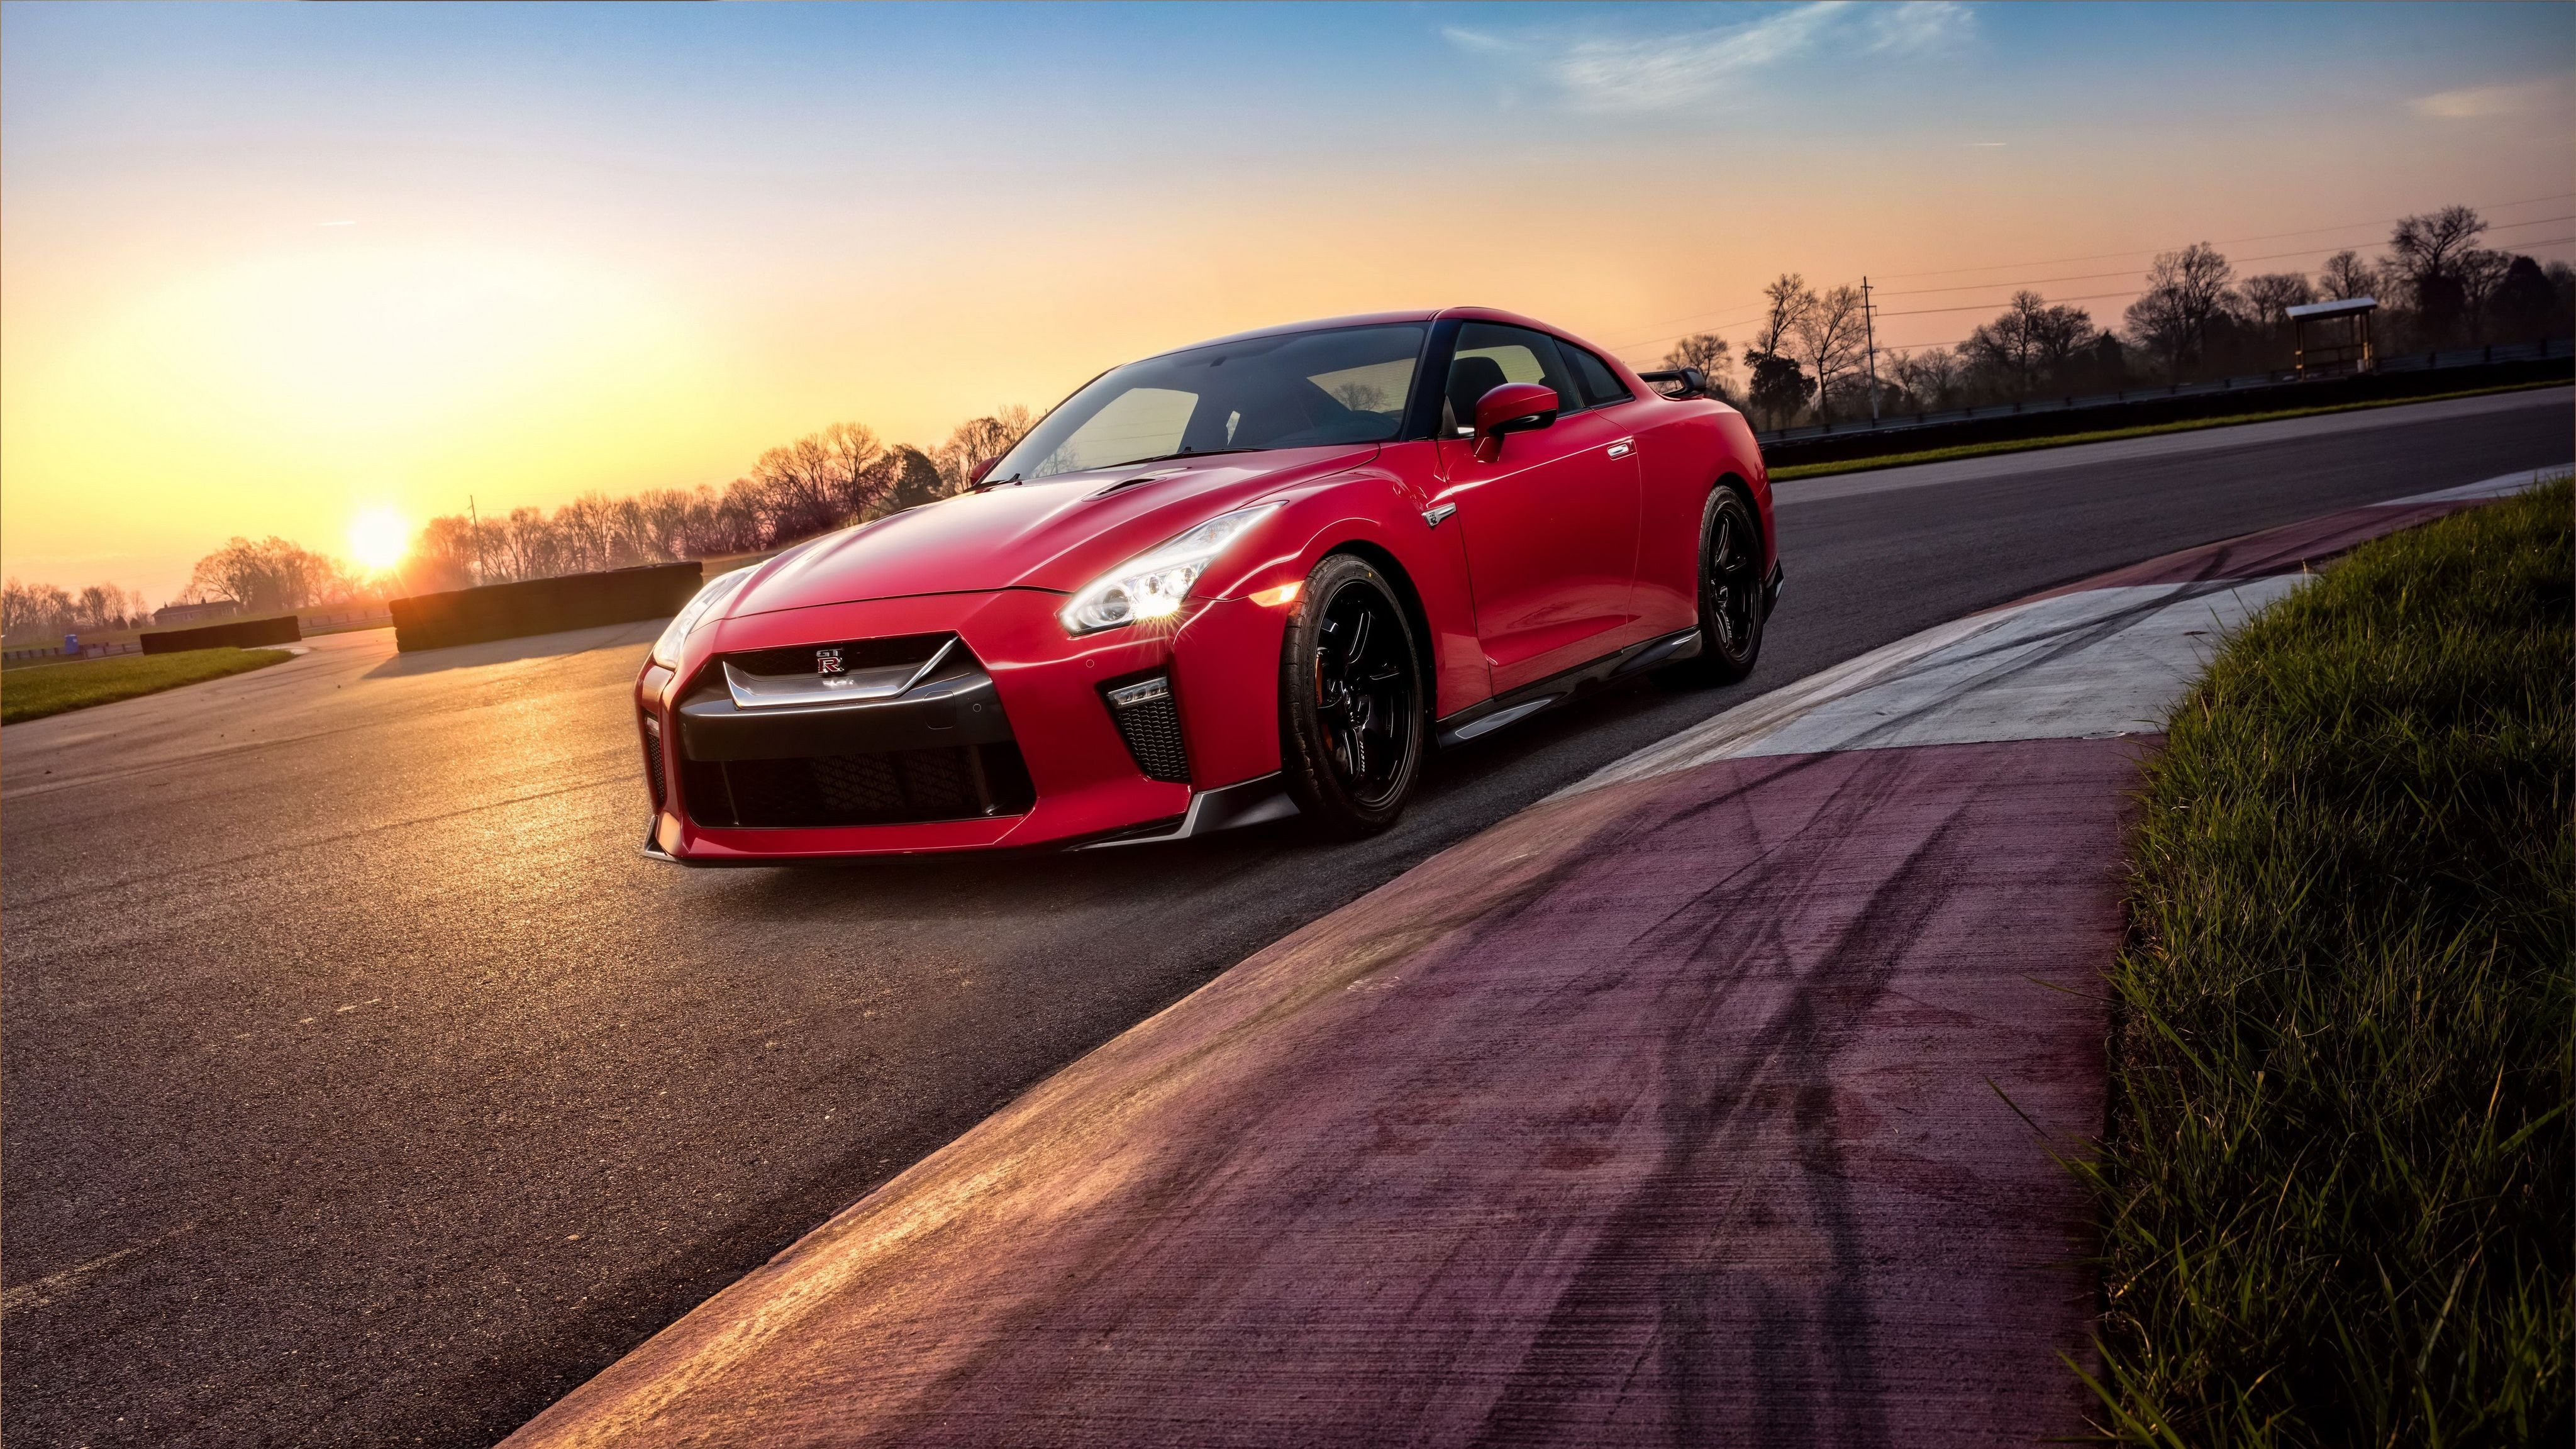 Latest Nissan Gt R 4K Wallpapers Top Free Nissan Gt R 4K Free Download